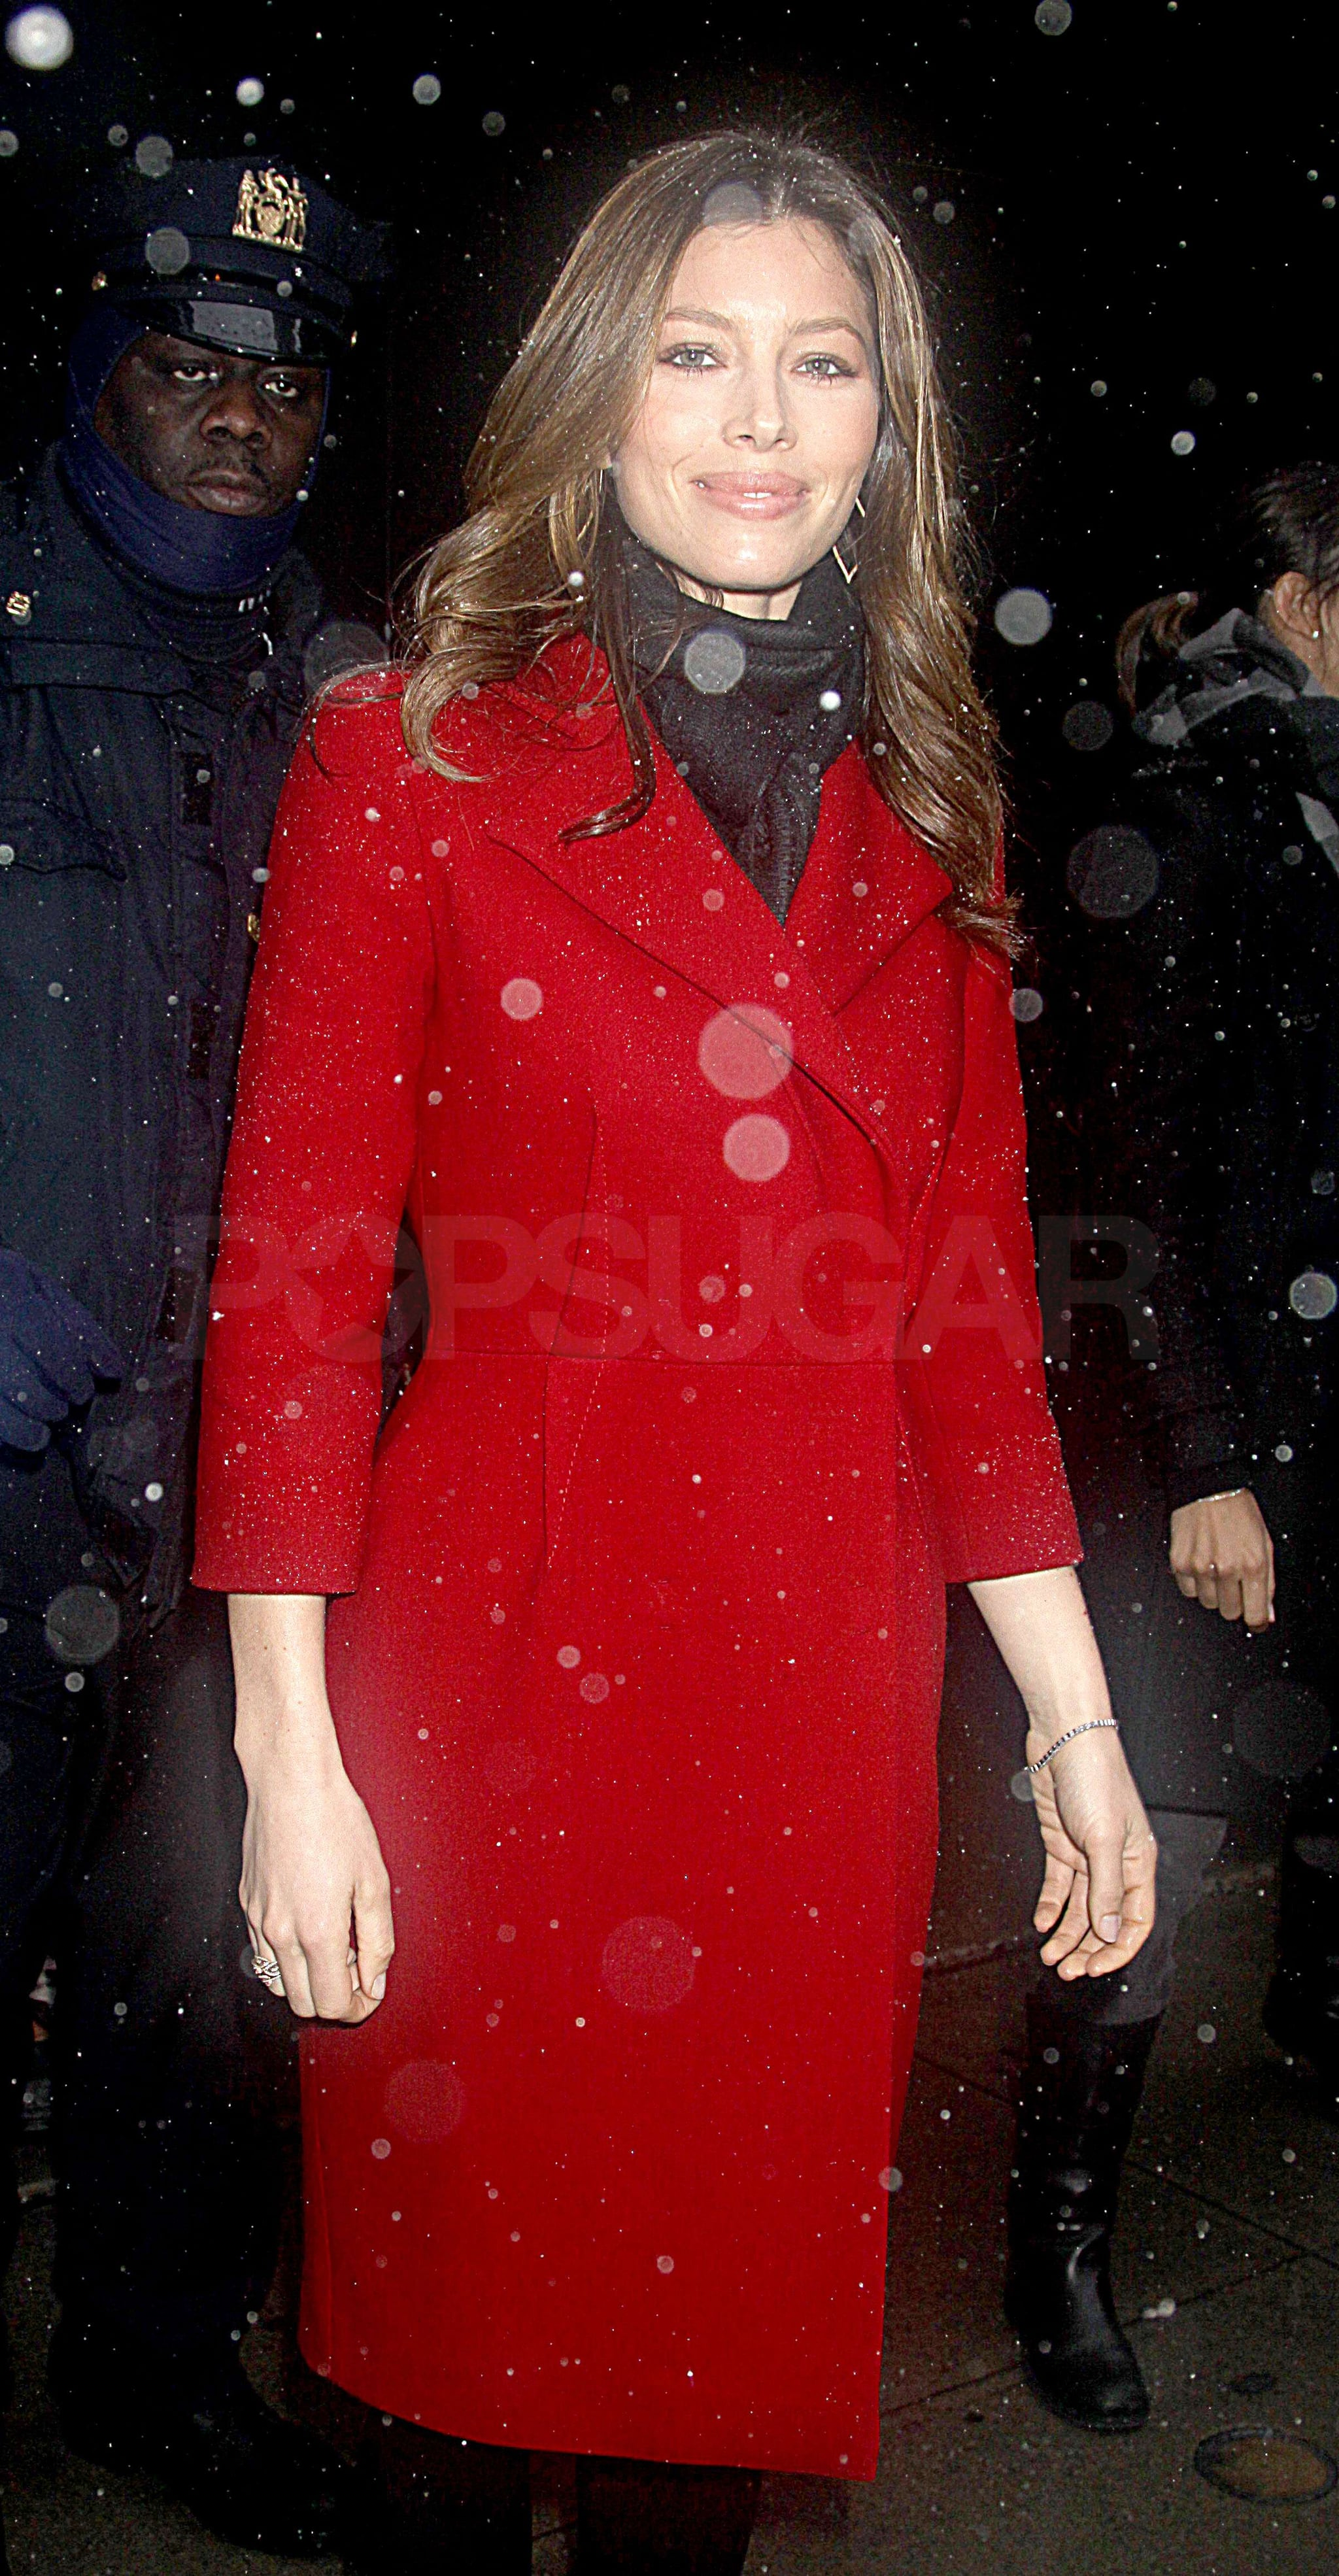 Photos Of Jennifer Garner And Jessica Biel Appearing On Gma To